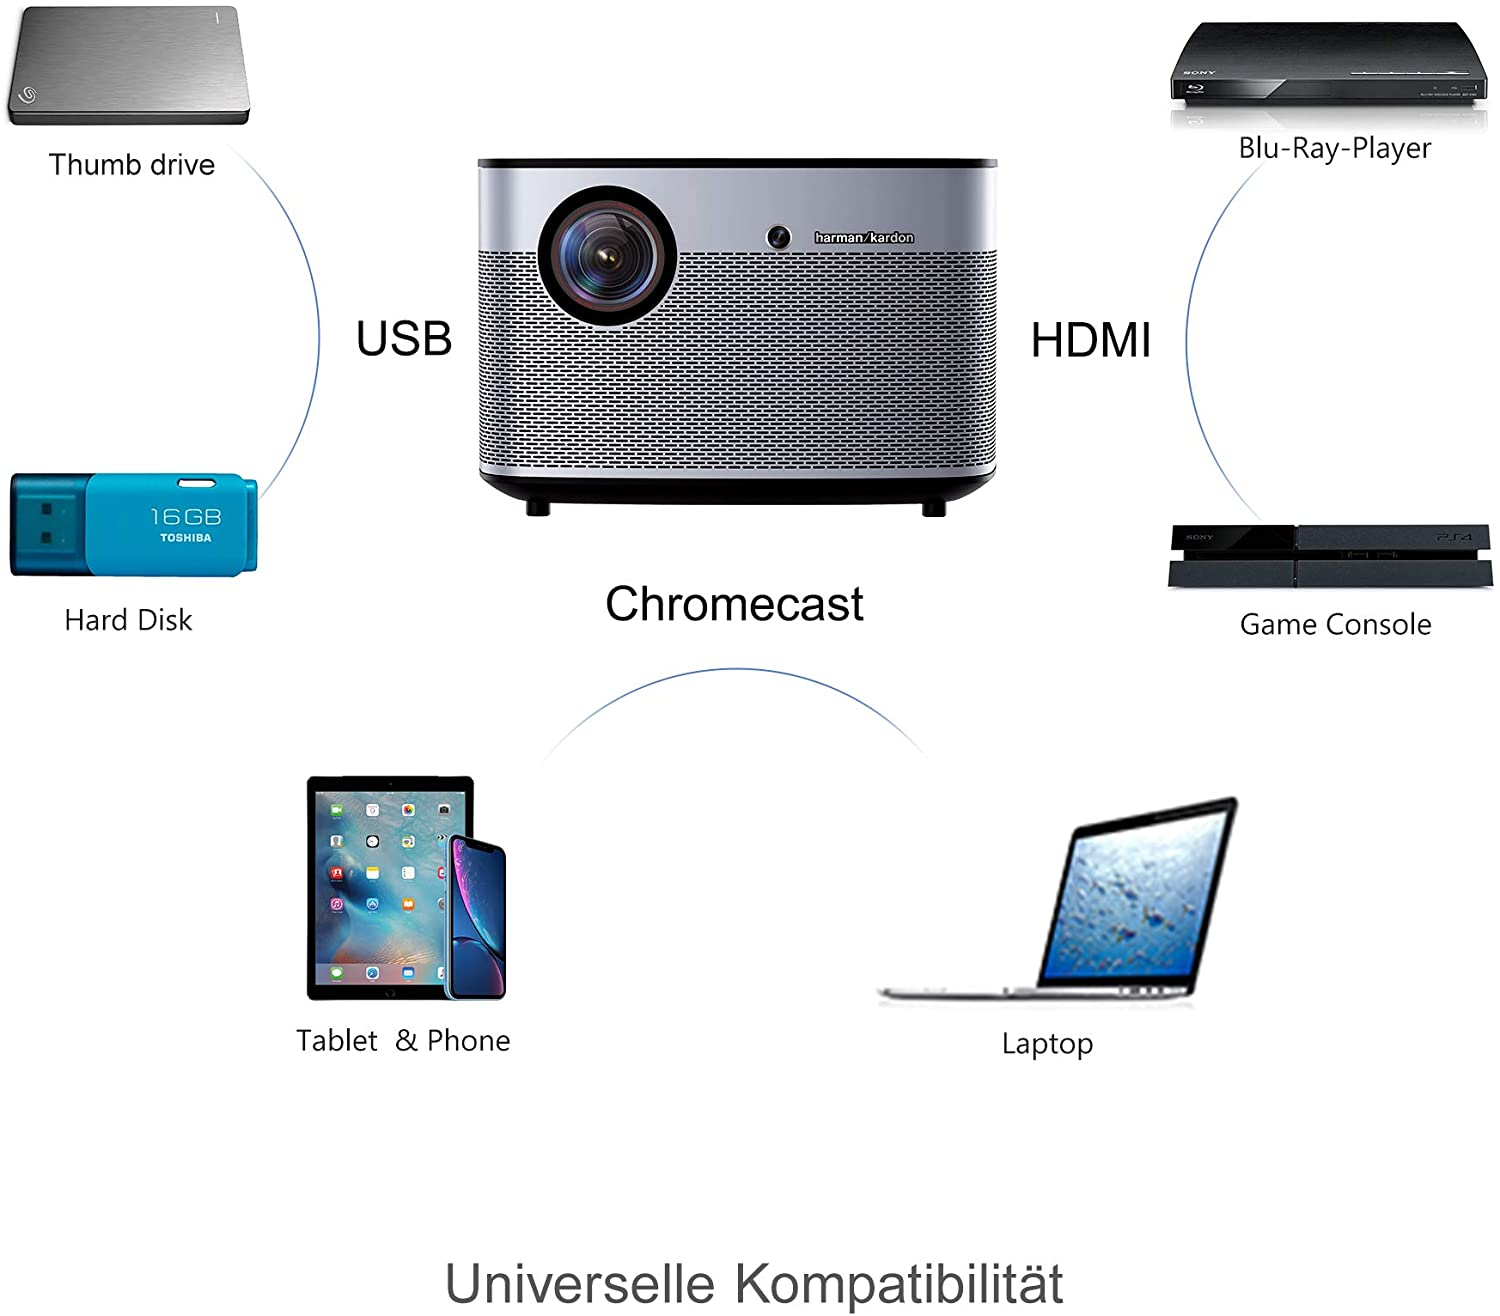 XGIMI H2 Home Projector 1350 ANSI Lumens 1080p Smart Video Projector Support Android TV Auto Focus 3D Wifi Bluetooth